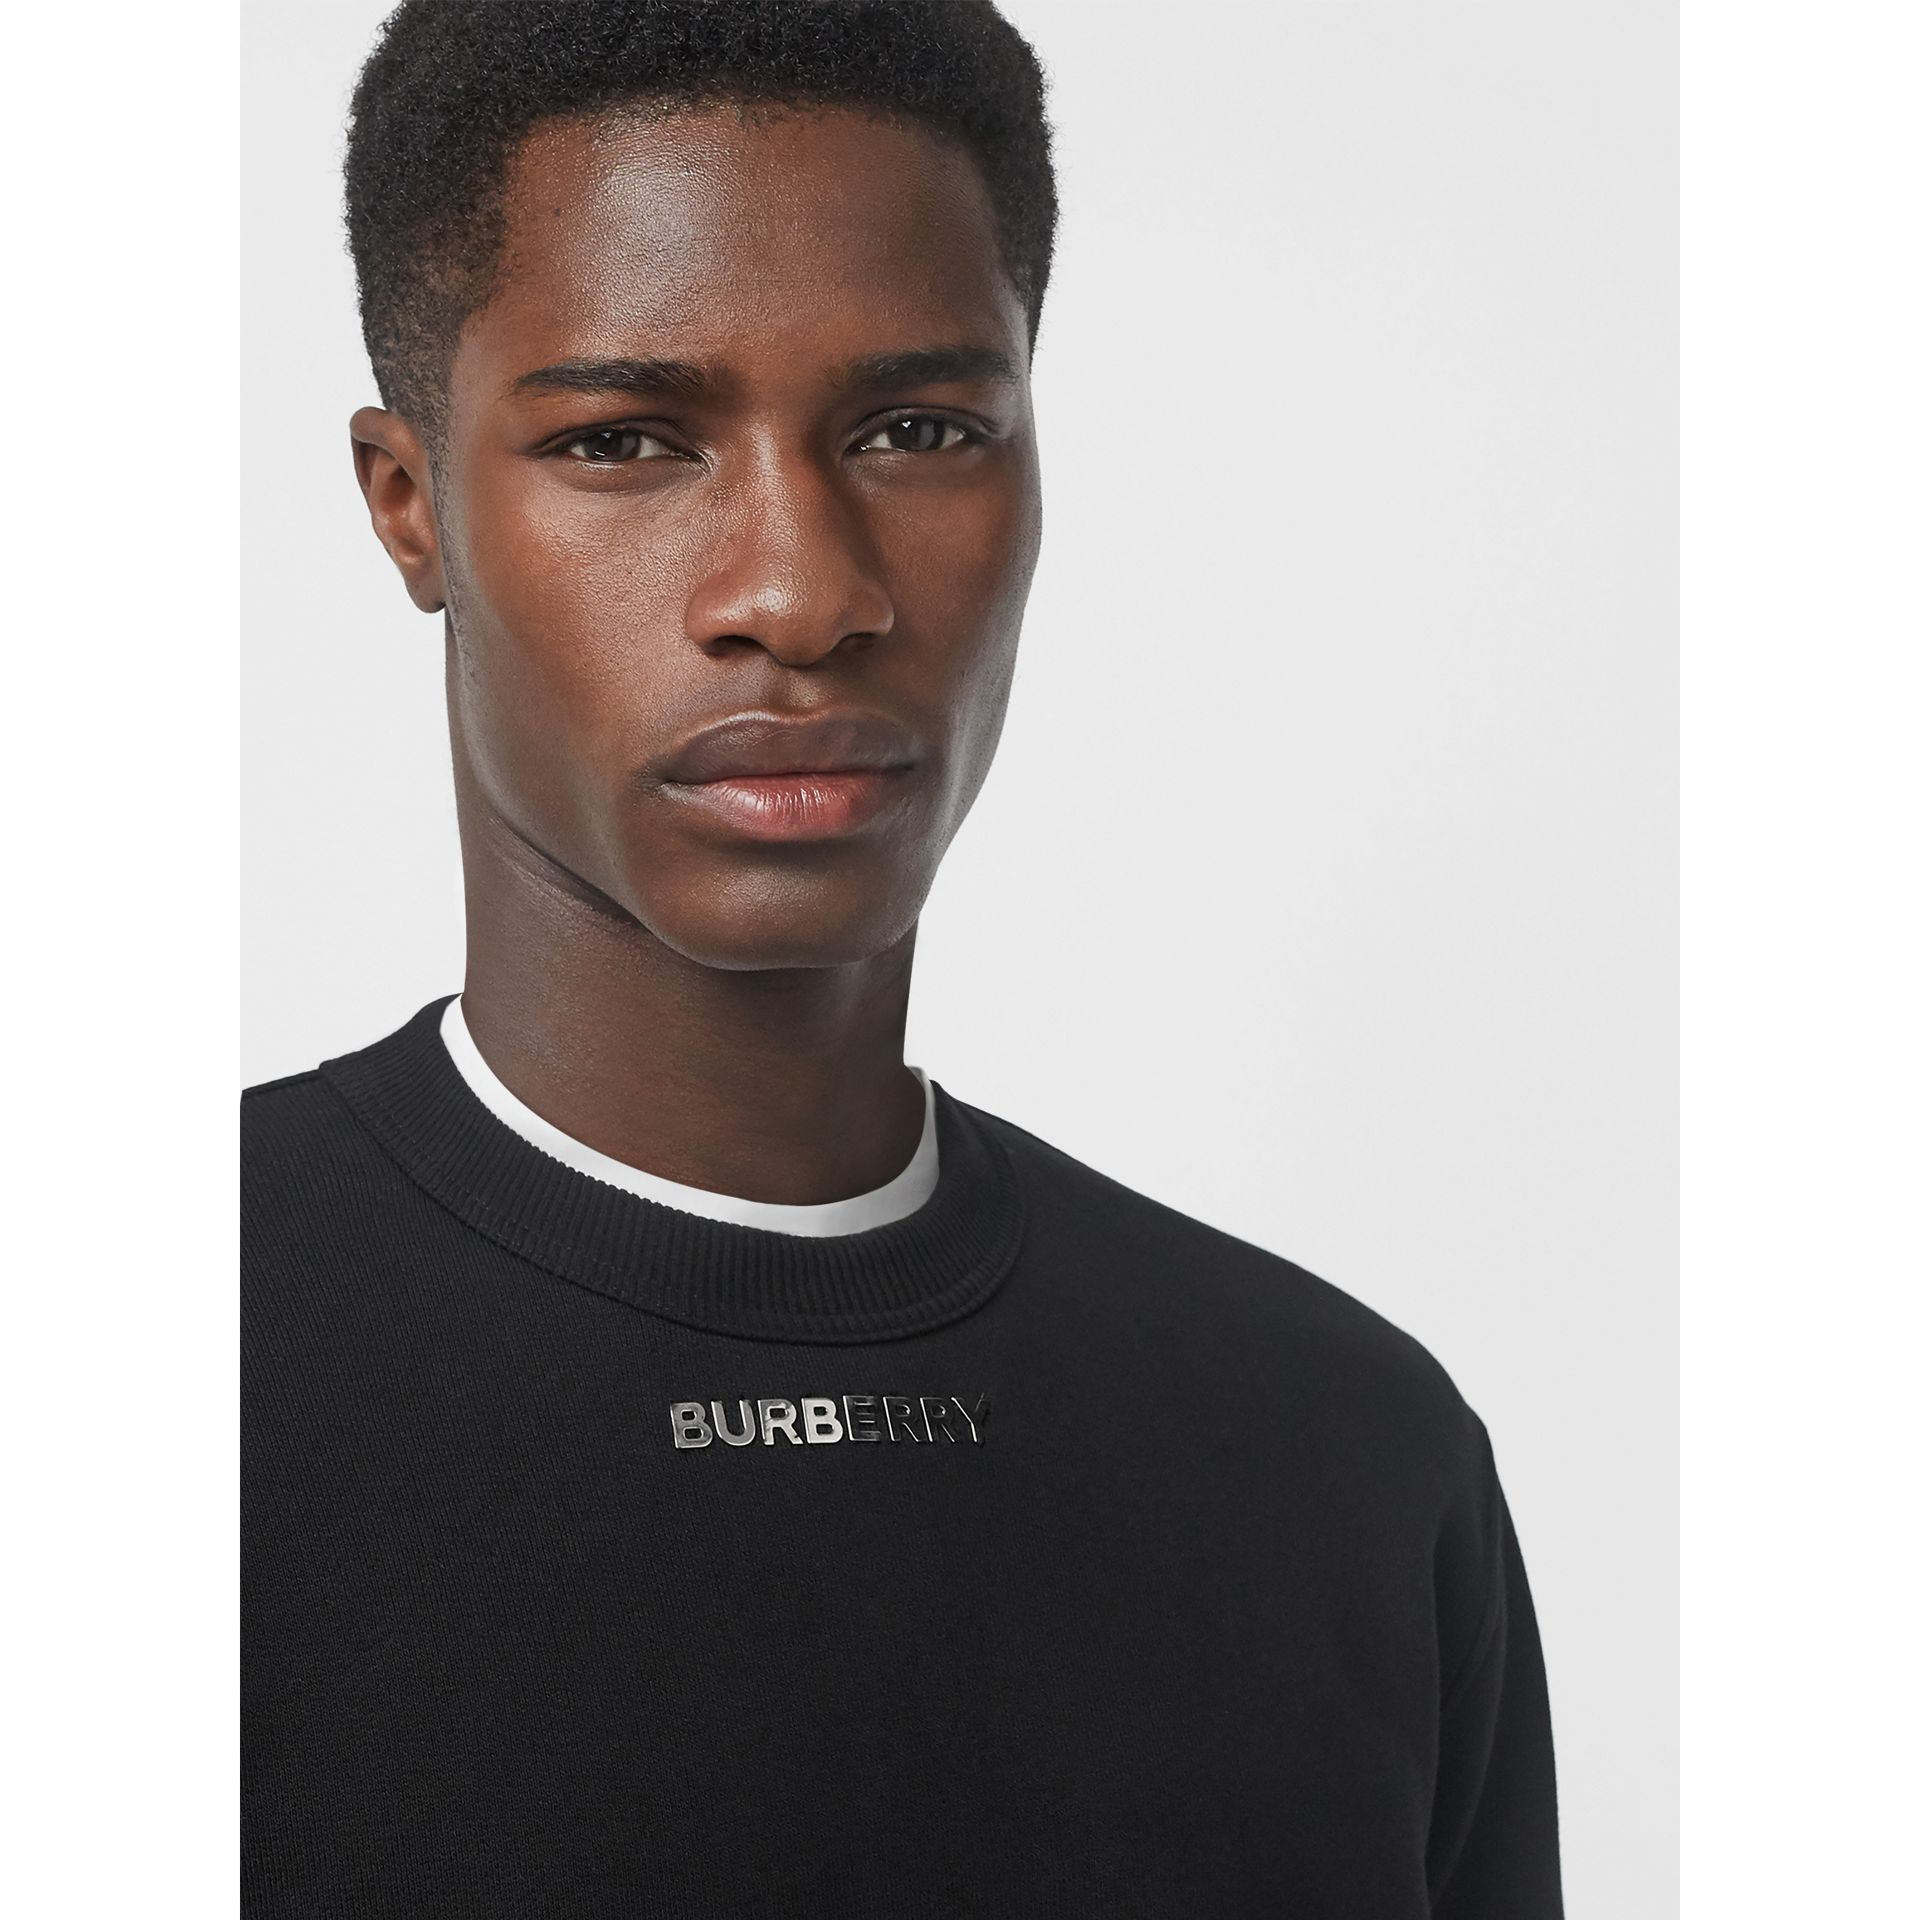 Sweat-shirt avec logo en métal (Noir) - Homme | Burberry - photo de la galerie 3